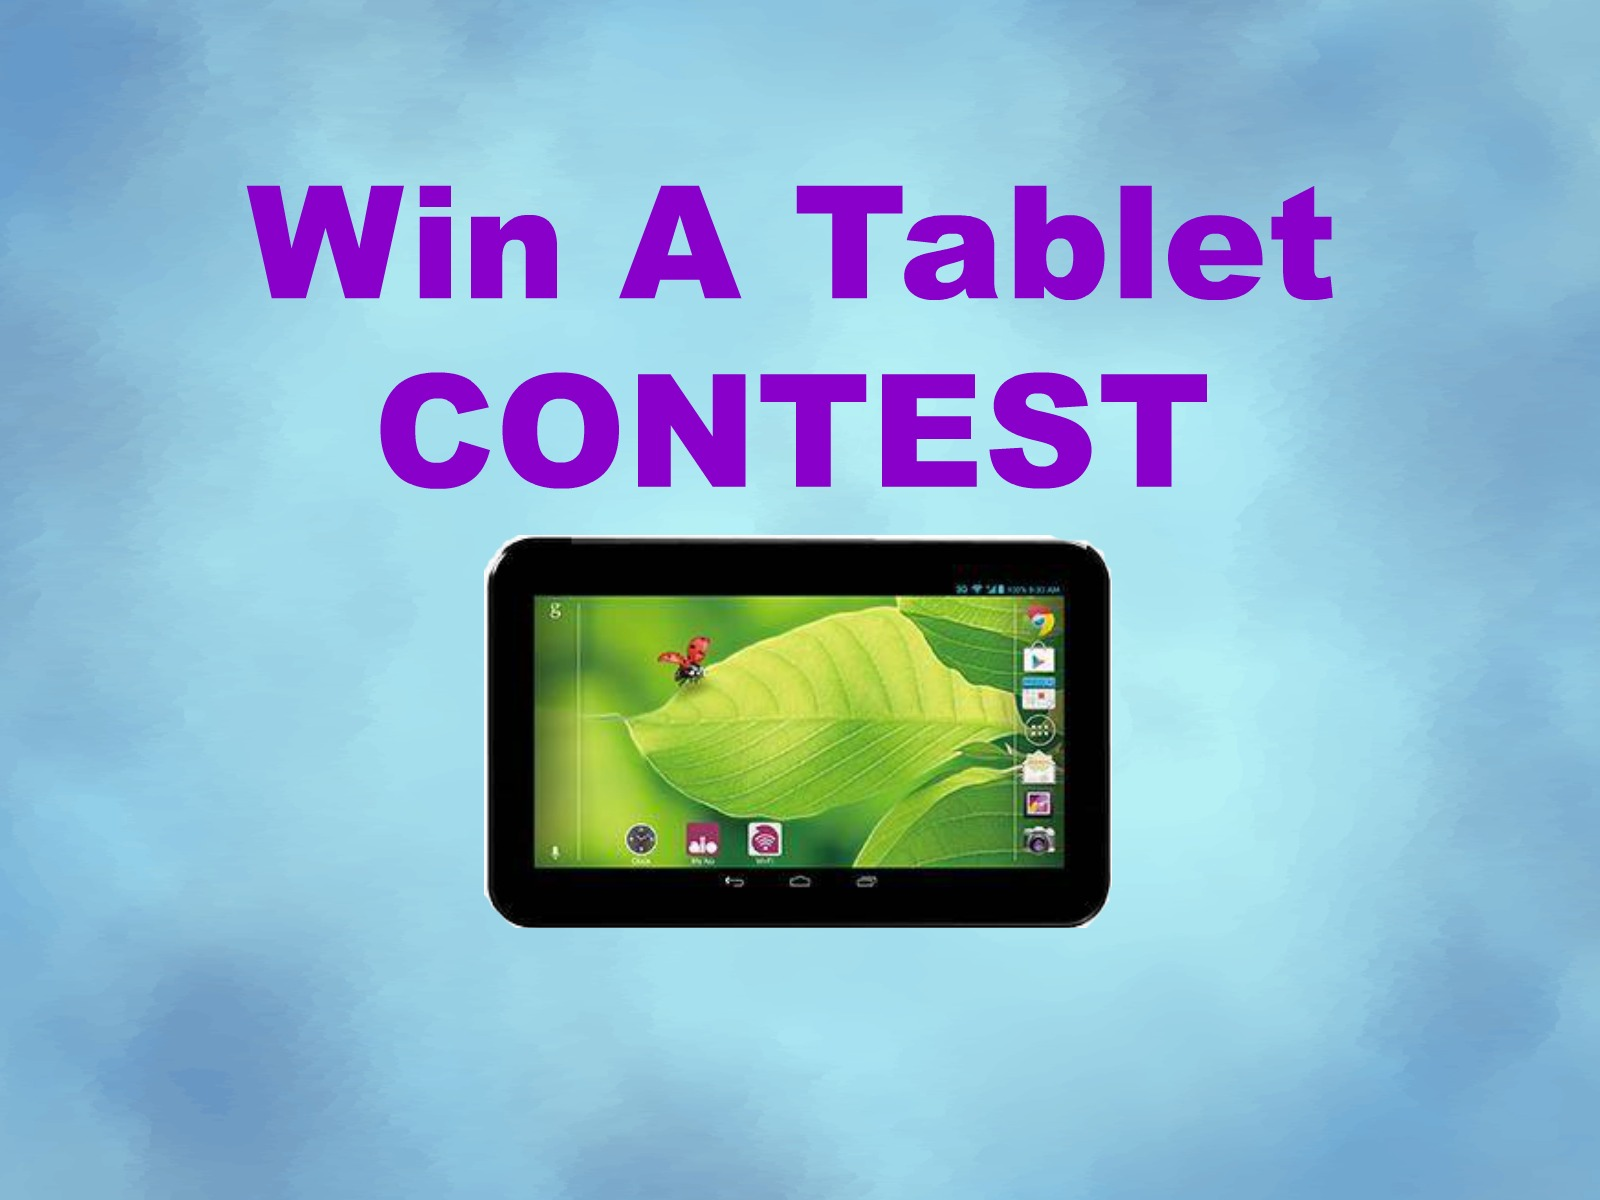 win a sweepstakes win a tablet contest entertain kids on a dime 1461